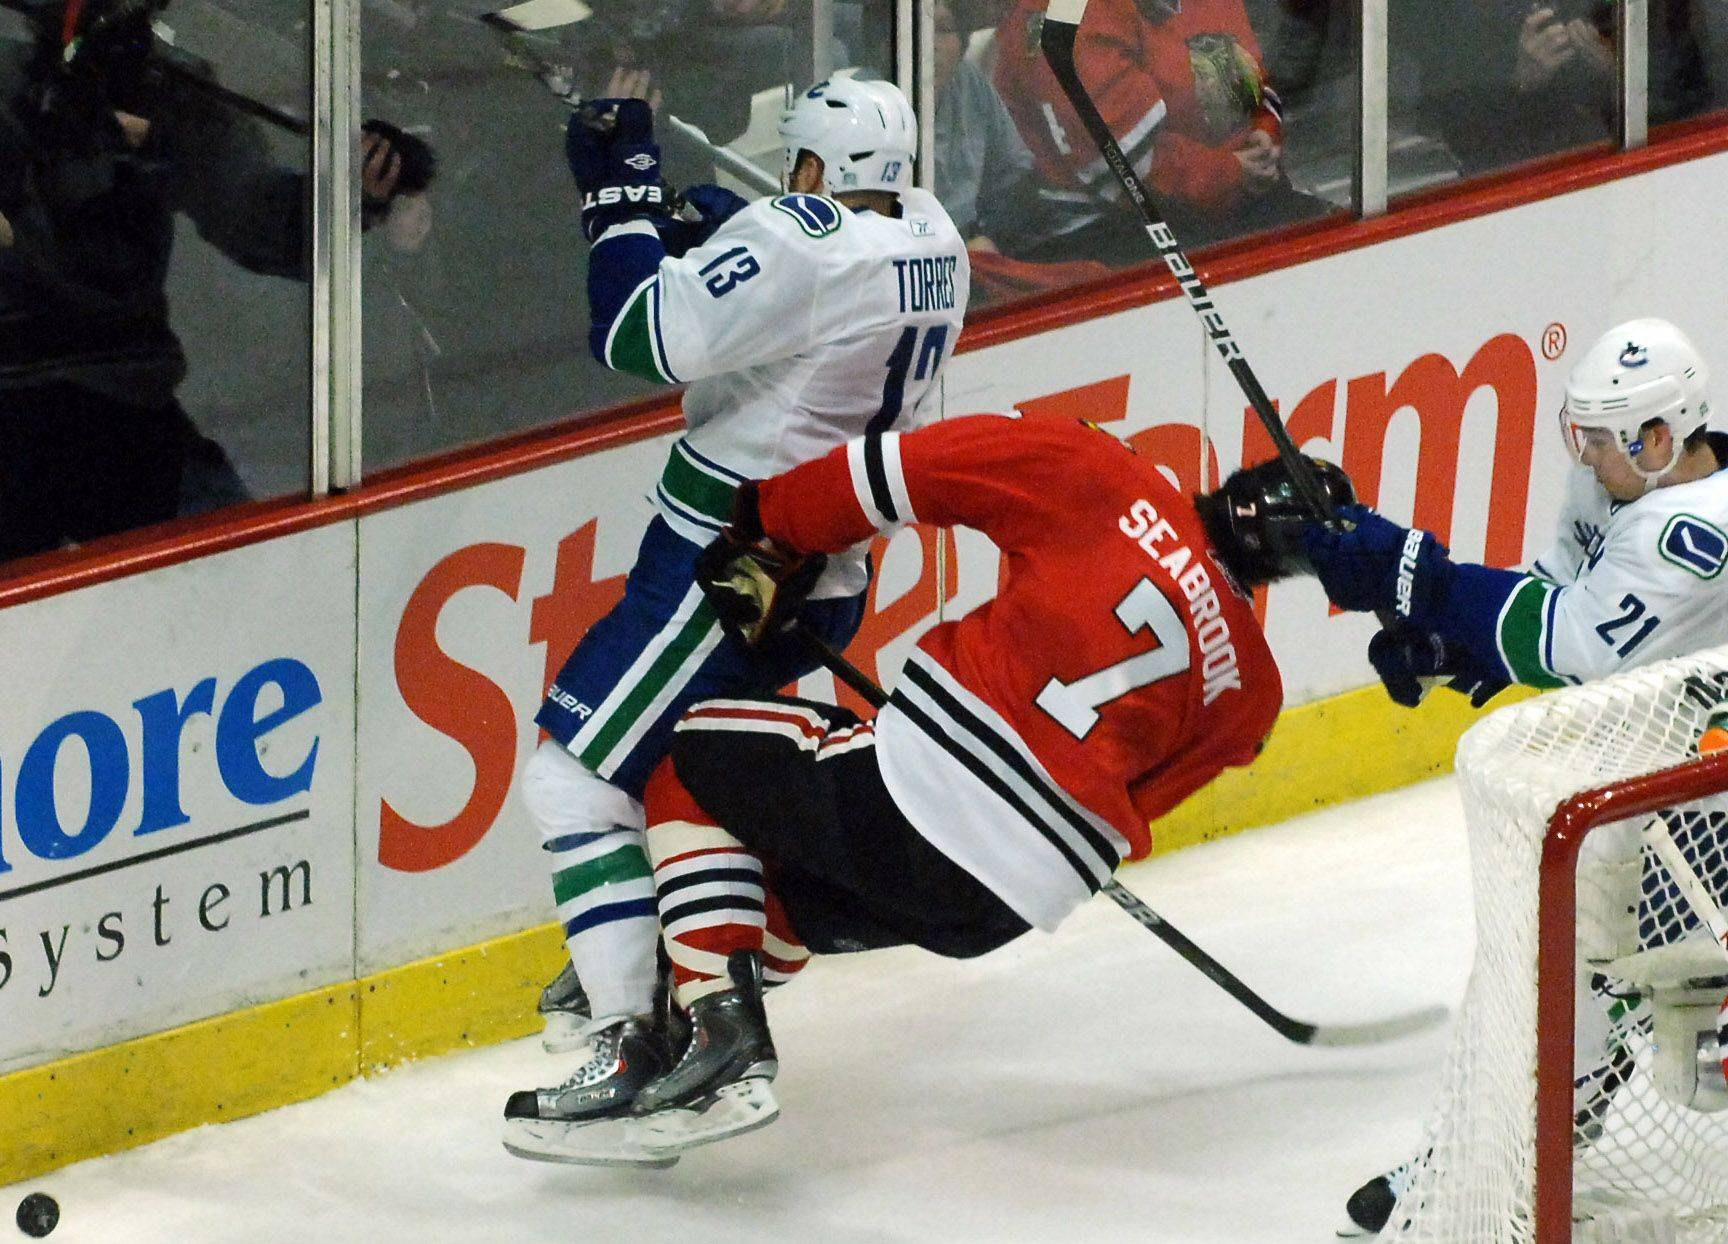 Vancouver Canucks left wing Raffi Torres got only a two-minute penalty for this hit on the Blackhawks' Brent Seabrook. Patrick Kane called the hit one of the dirtiest he has ever seen.